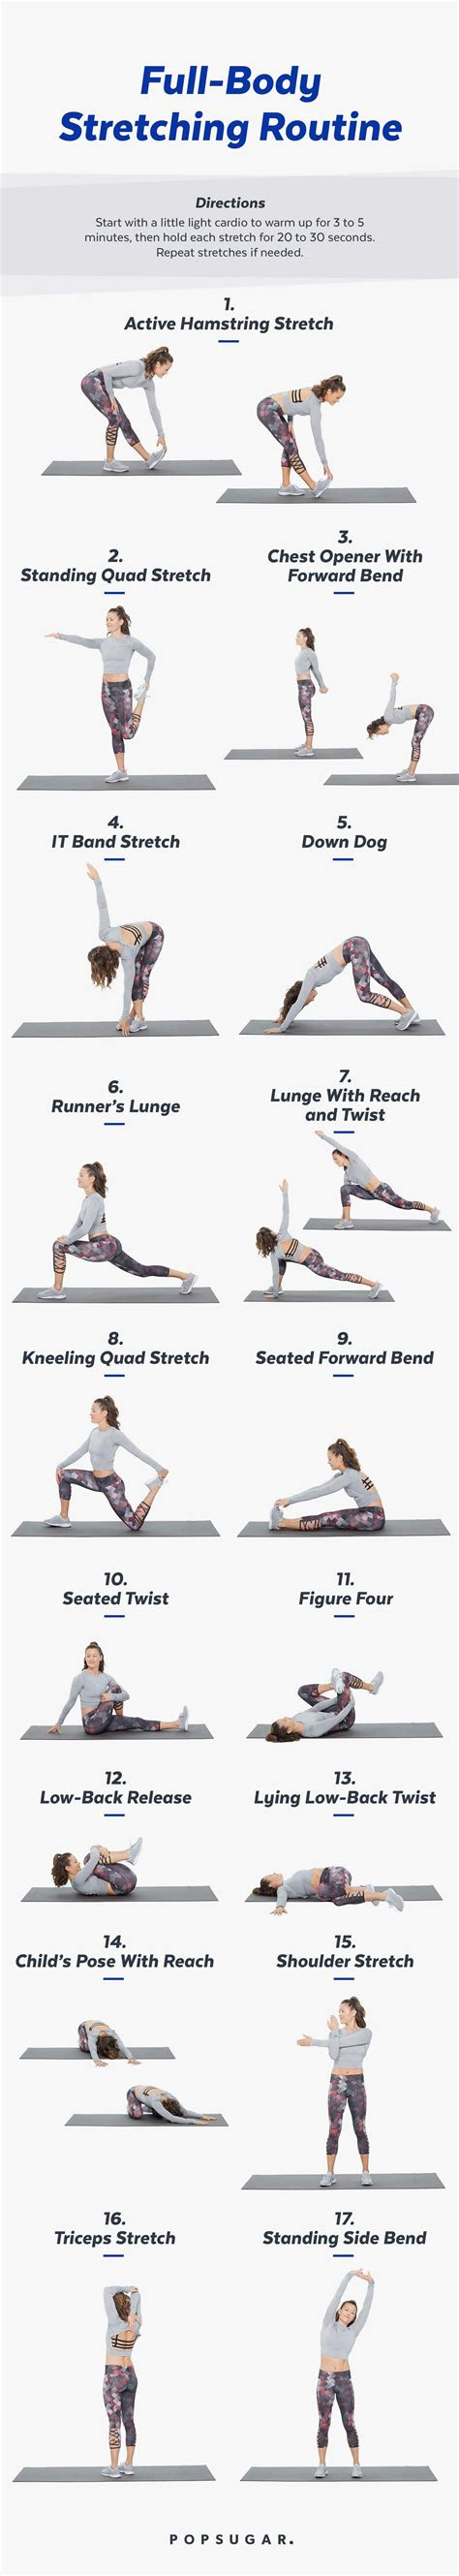 printable stretch routine popsugar fitness